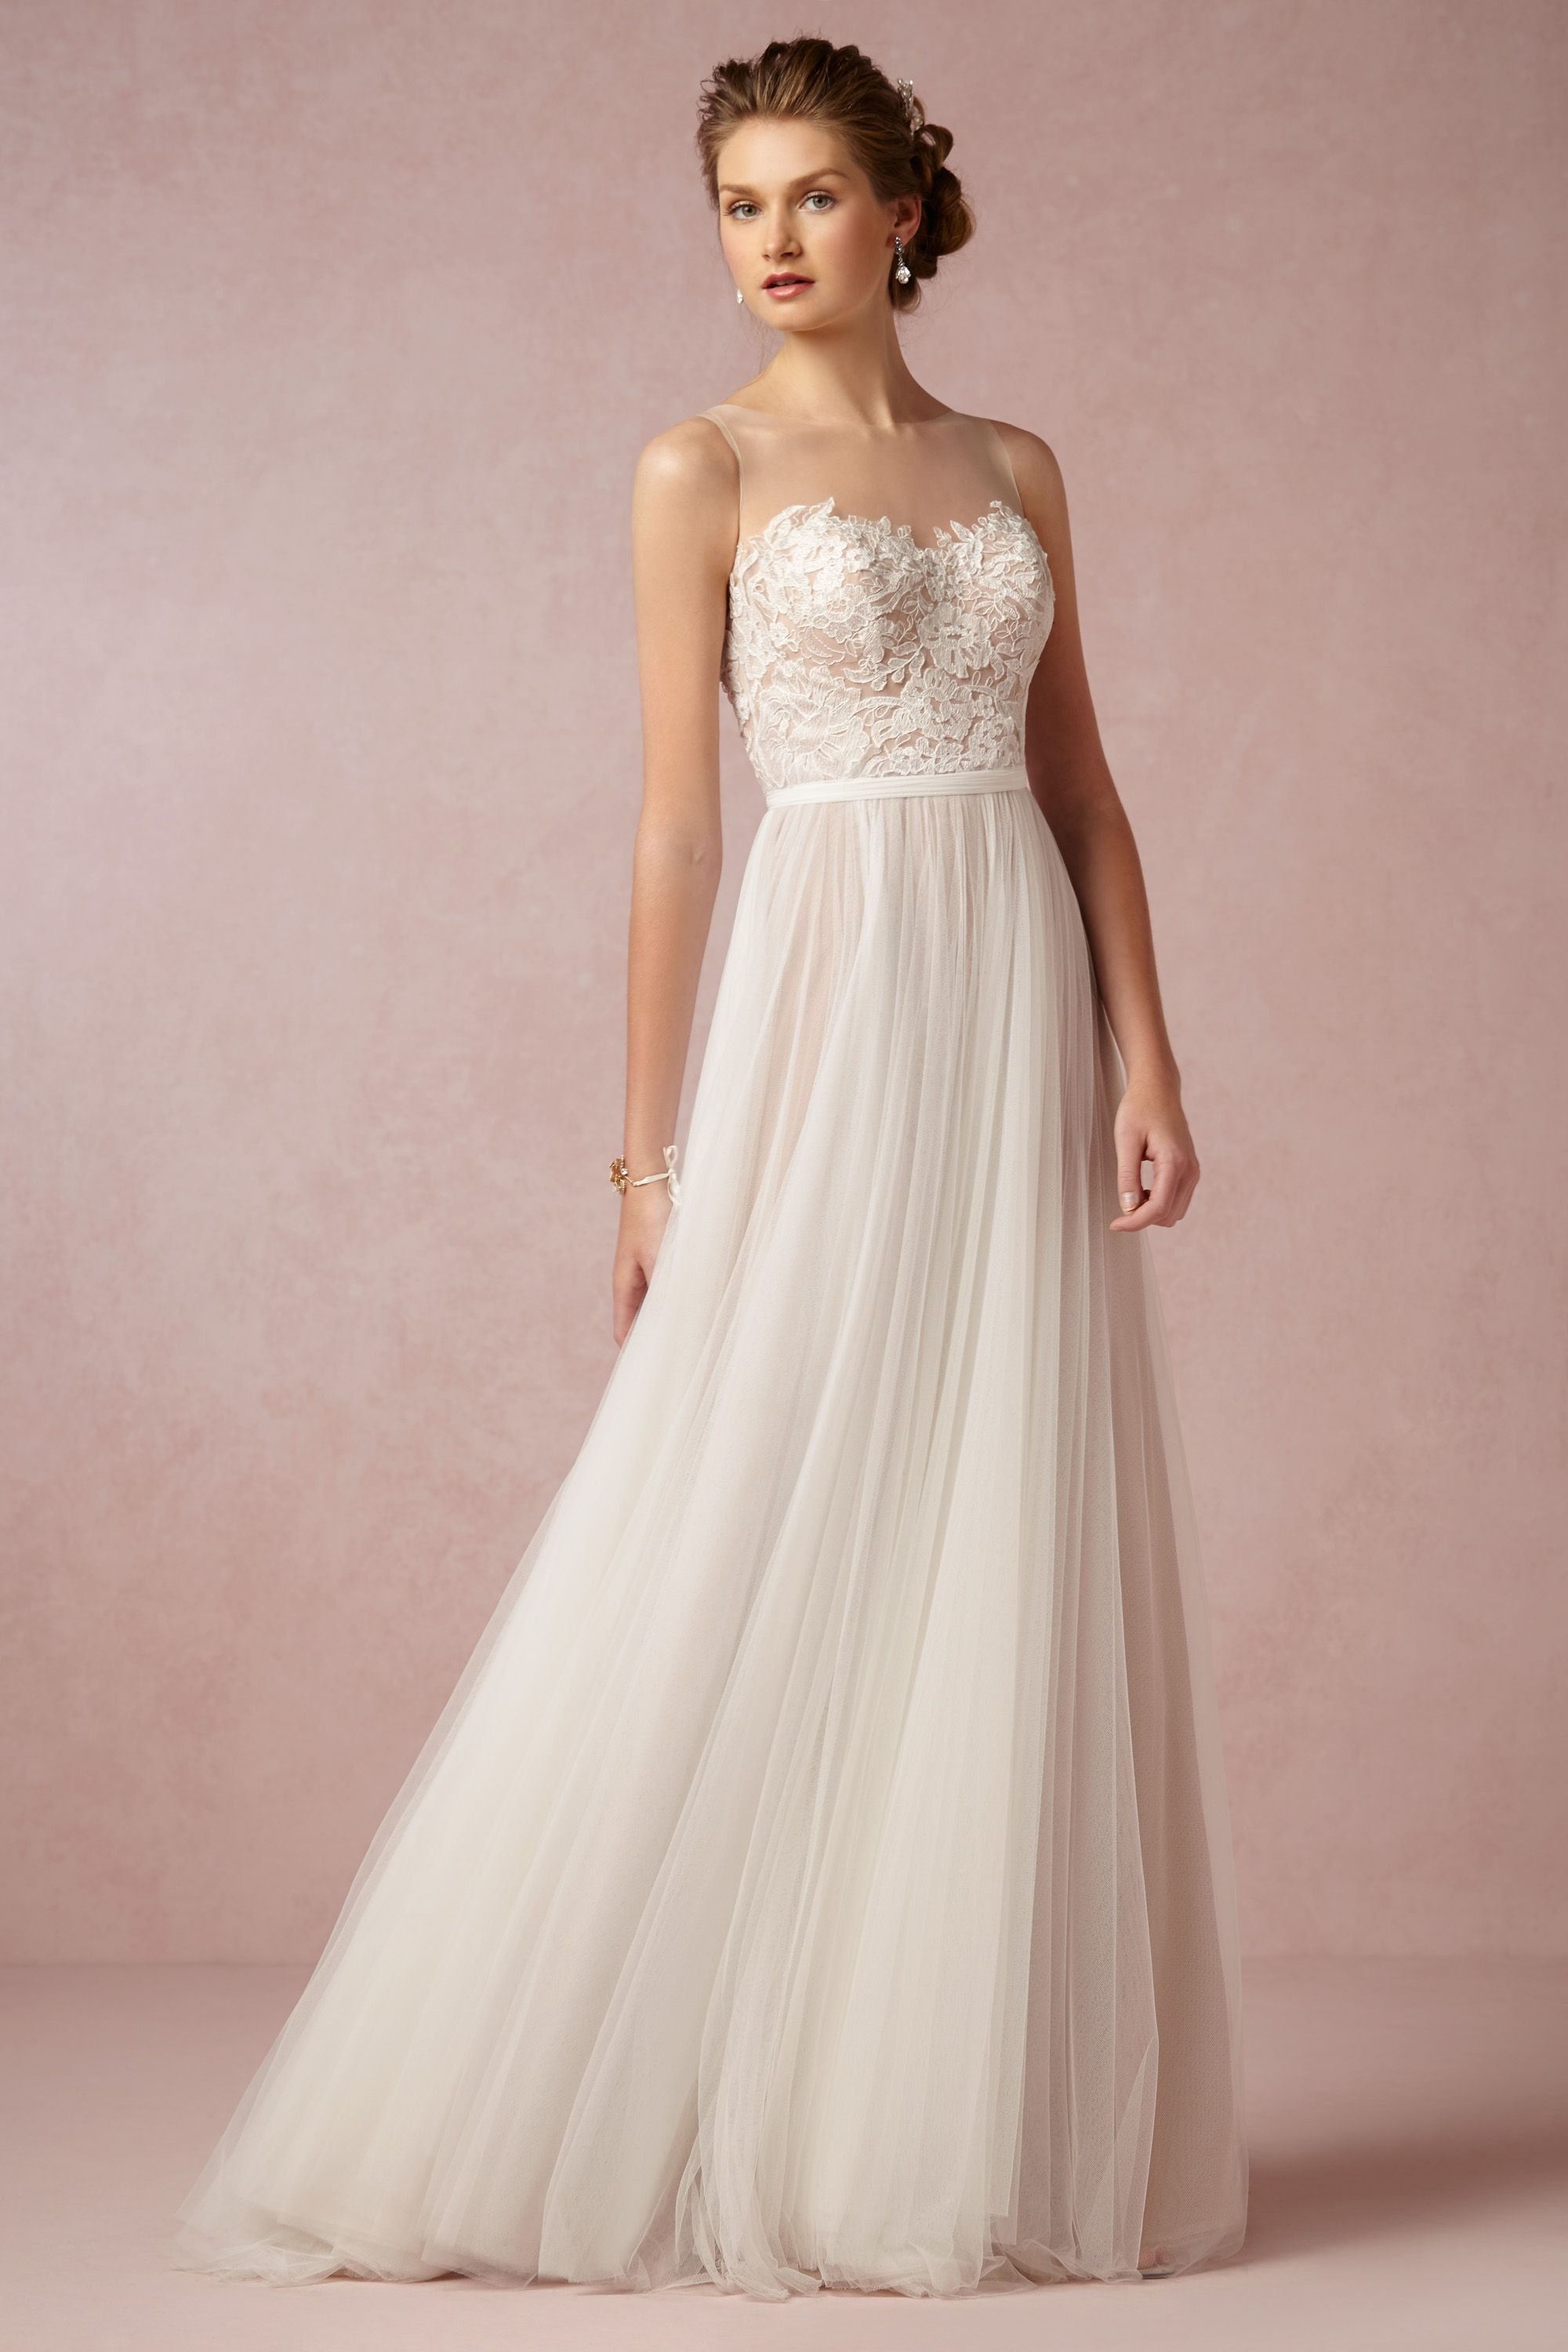 e6d7115d64f Wedding dress. The Penelope gown from  BHLDN is also incredibly gorgeous.  Look how lovely all those layers of tulle fall!  BHLDNwishes